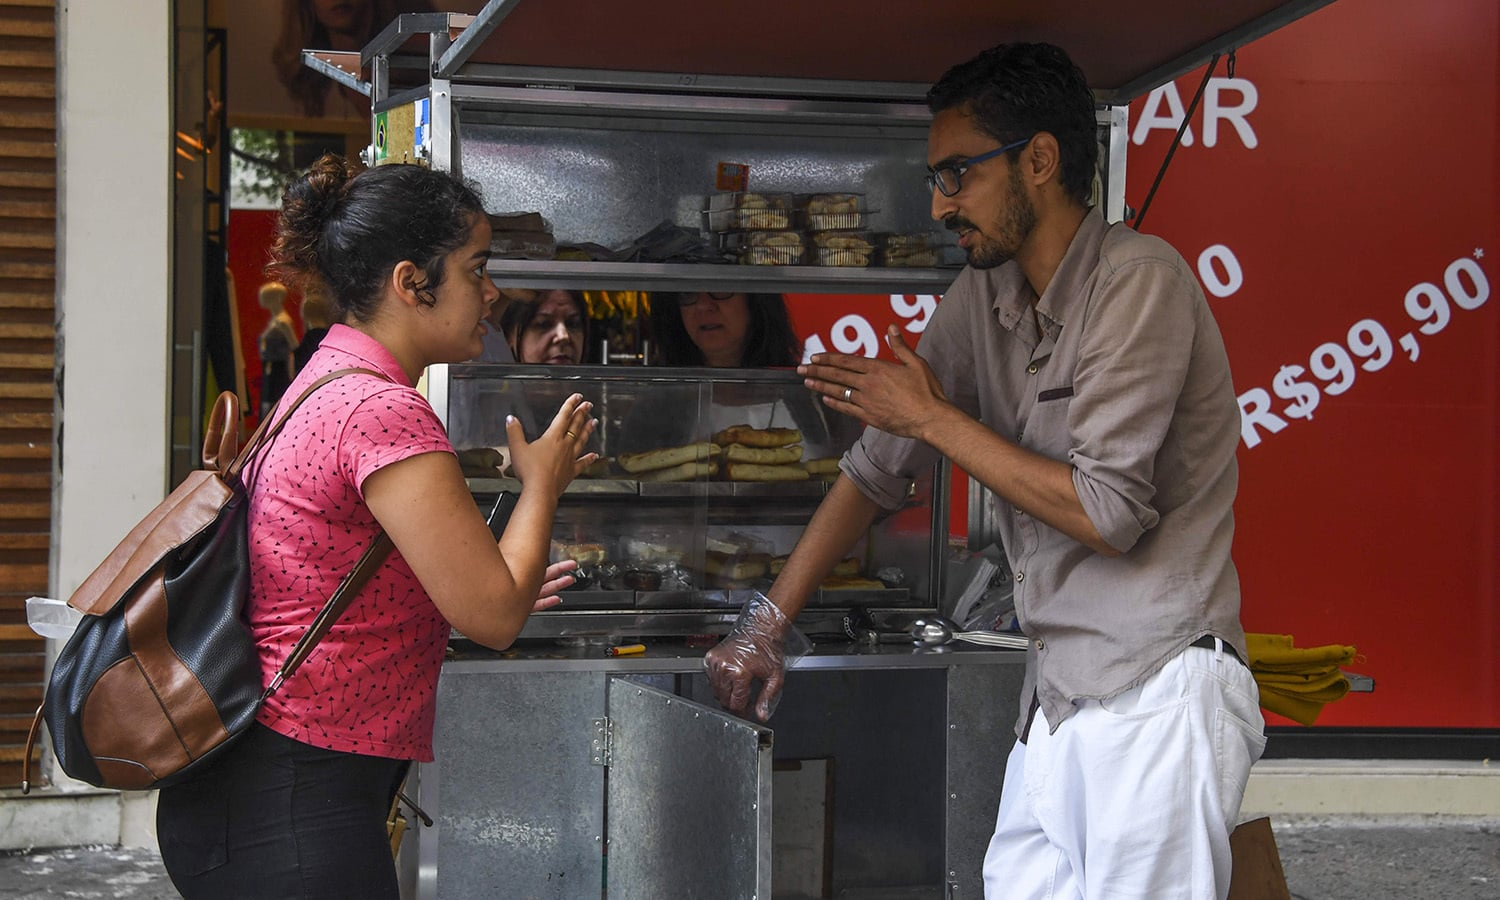 Mohamed Ali Abdelmoatty Kenawy attends to a customer at his food stand.— AFP